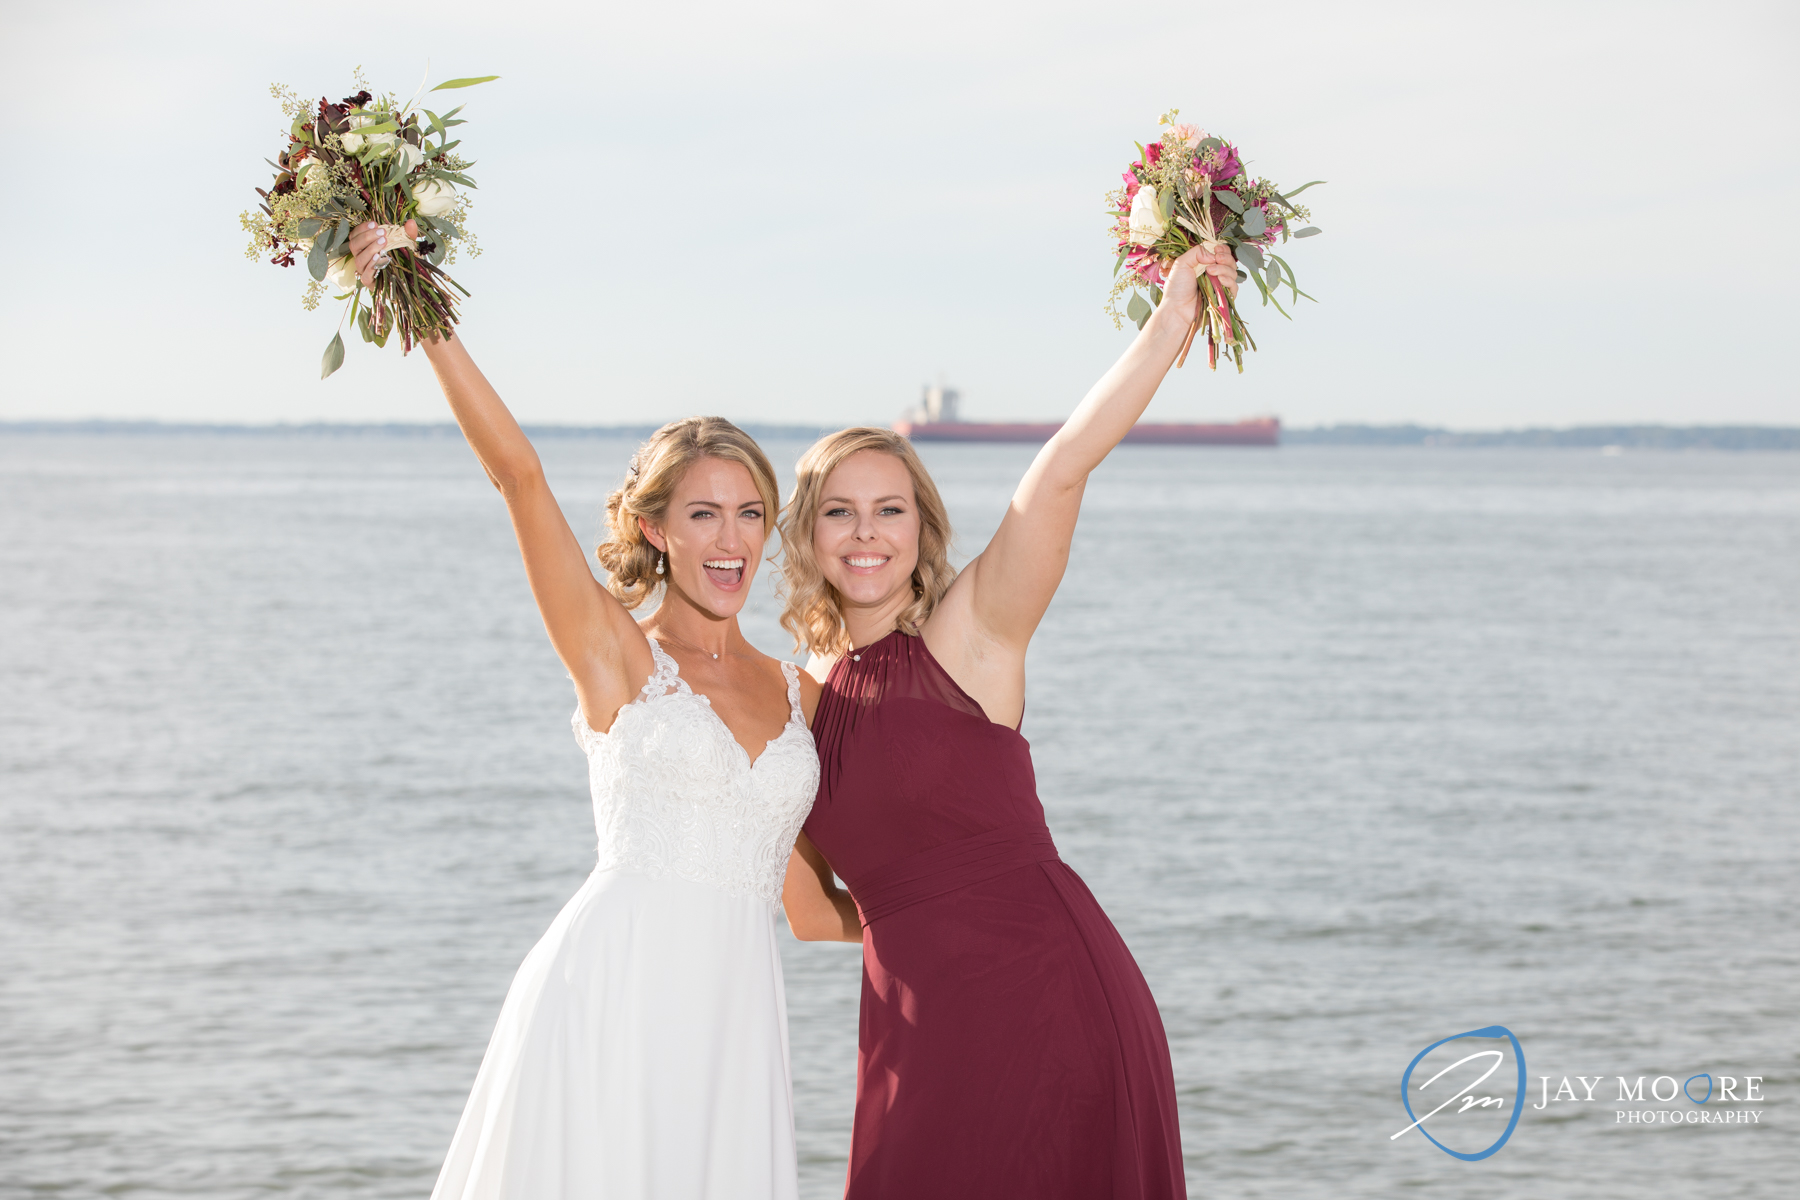 102117 MD Colleen McArdle + Matthew - Jay Moore Photography AF LS_0495.jpg